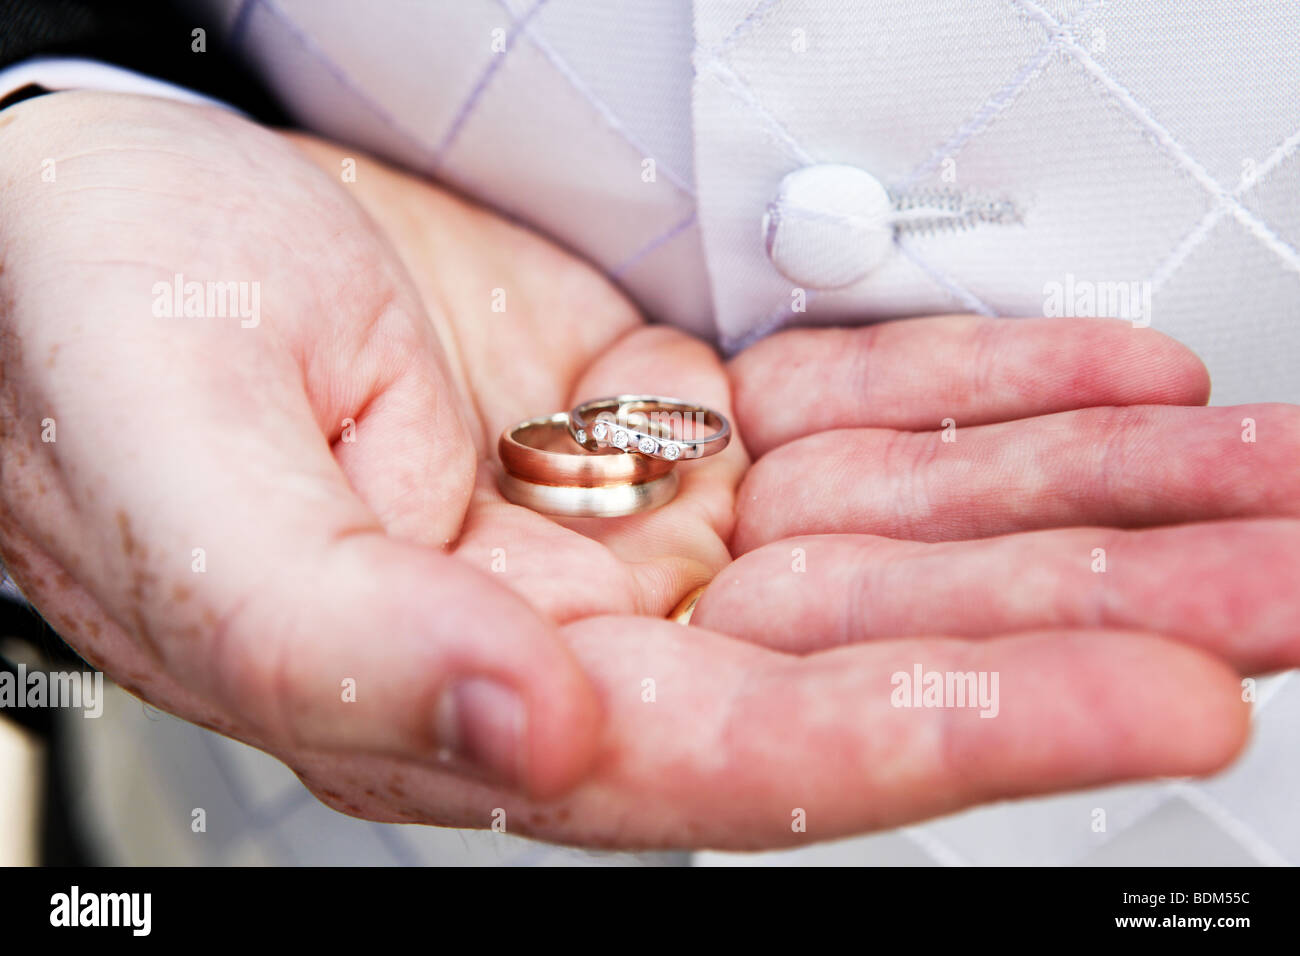 Wedding Bands Closeup Stock Photos & Wedding Bands Closeup Stock ...